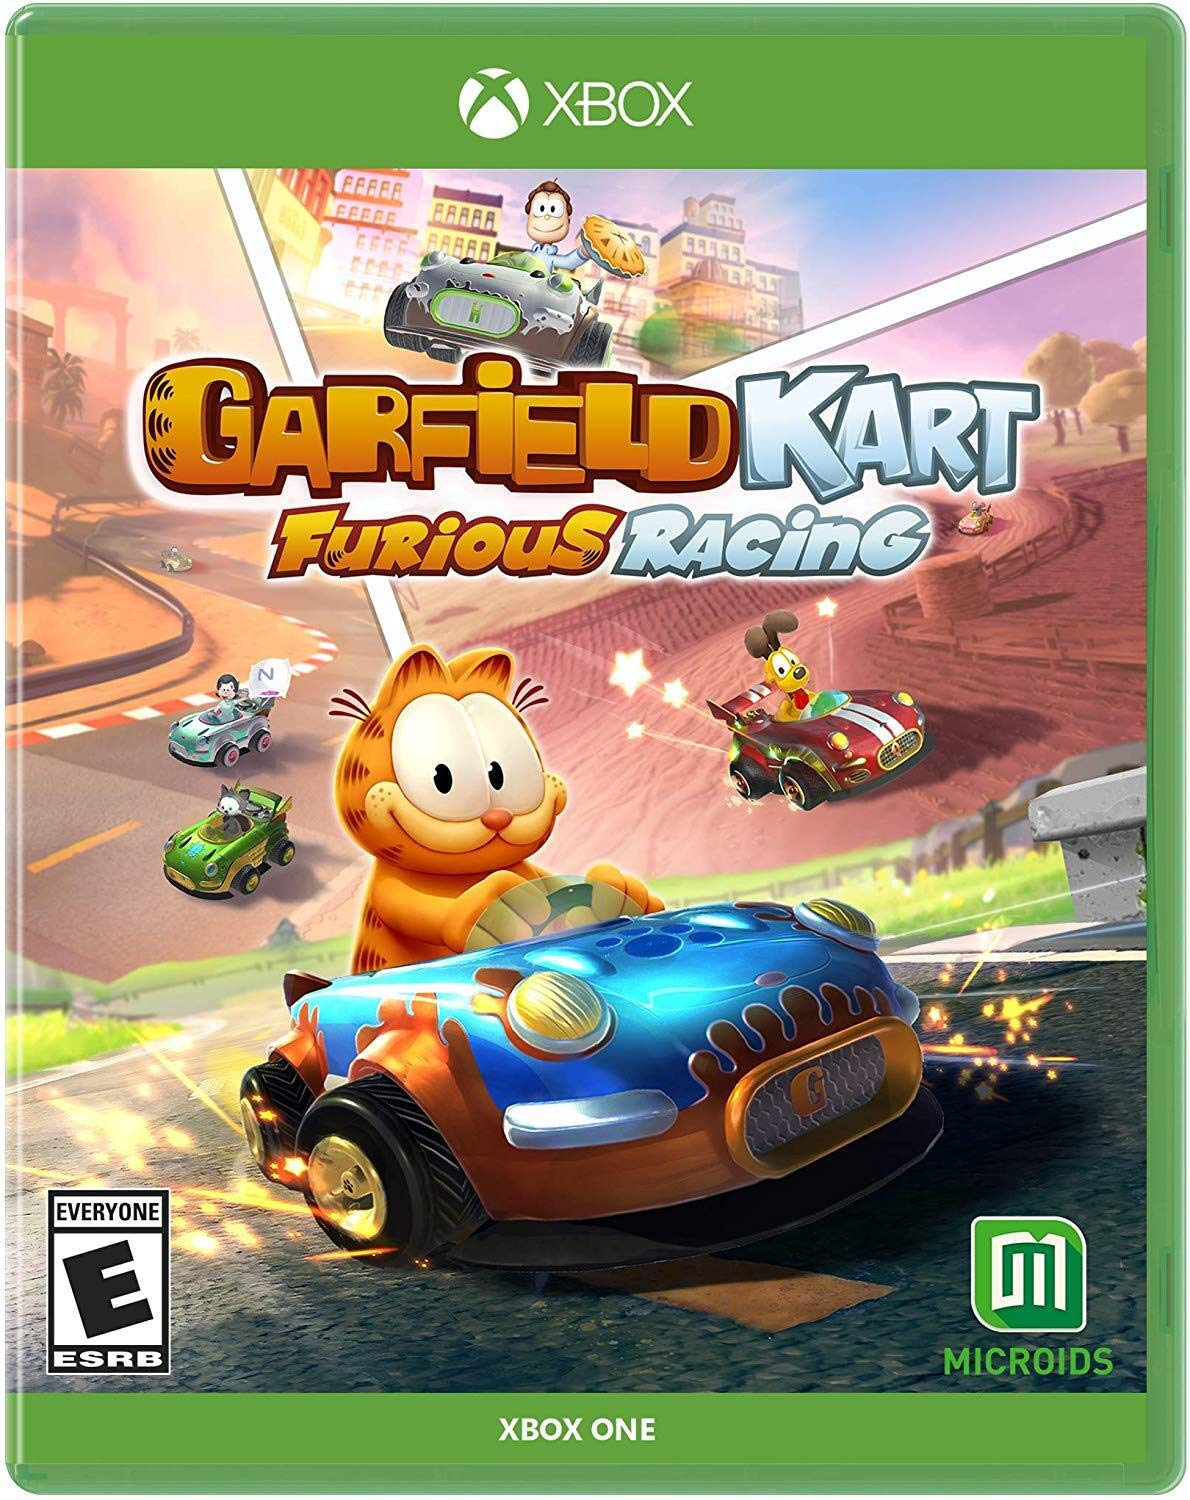 Amazon Com Garfield Kart Furious Racing Xb1 Xbox One Maximum Games Llc Video Games